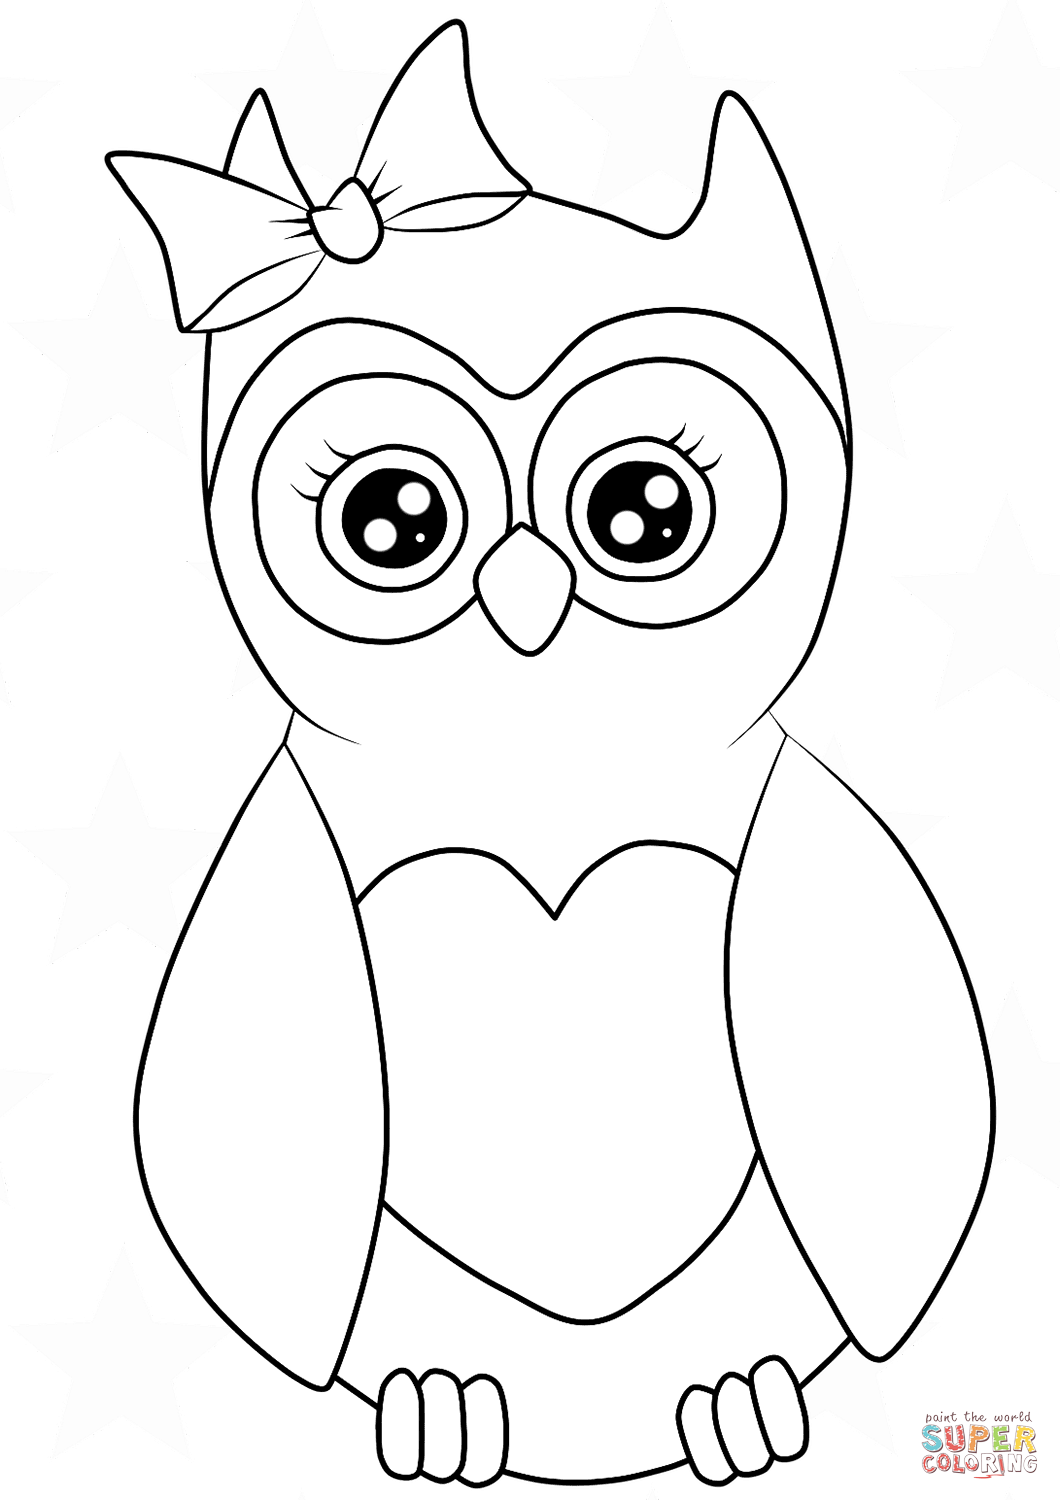 Cutest Cartoon Owl Coloring Page